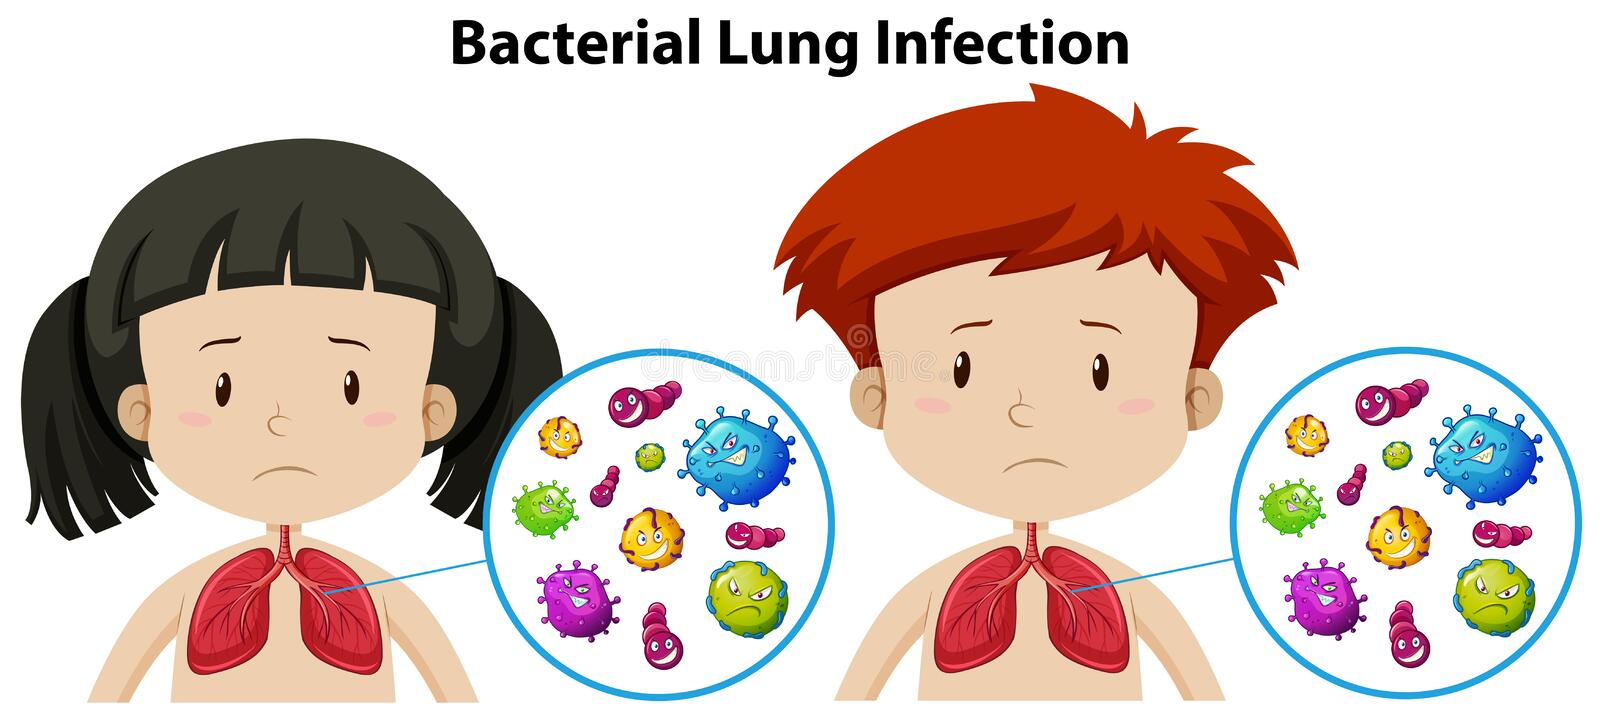 Un insieme di Lung Infection batterico illustrazione di stock